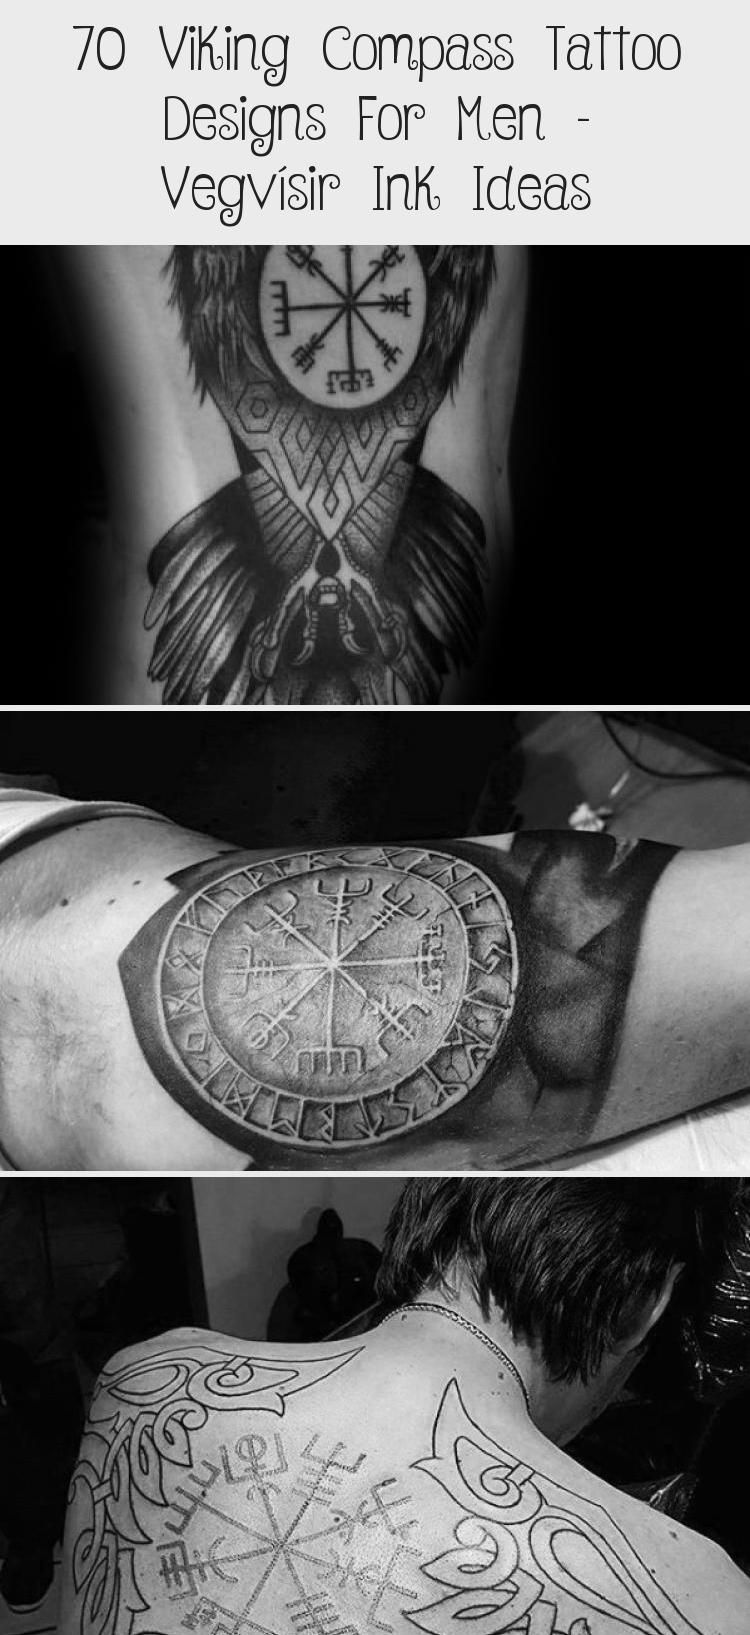 70 Viking Compass Tattoo Designs For Men Vegvísir Ink